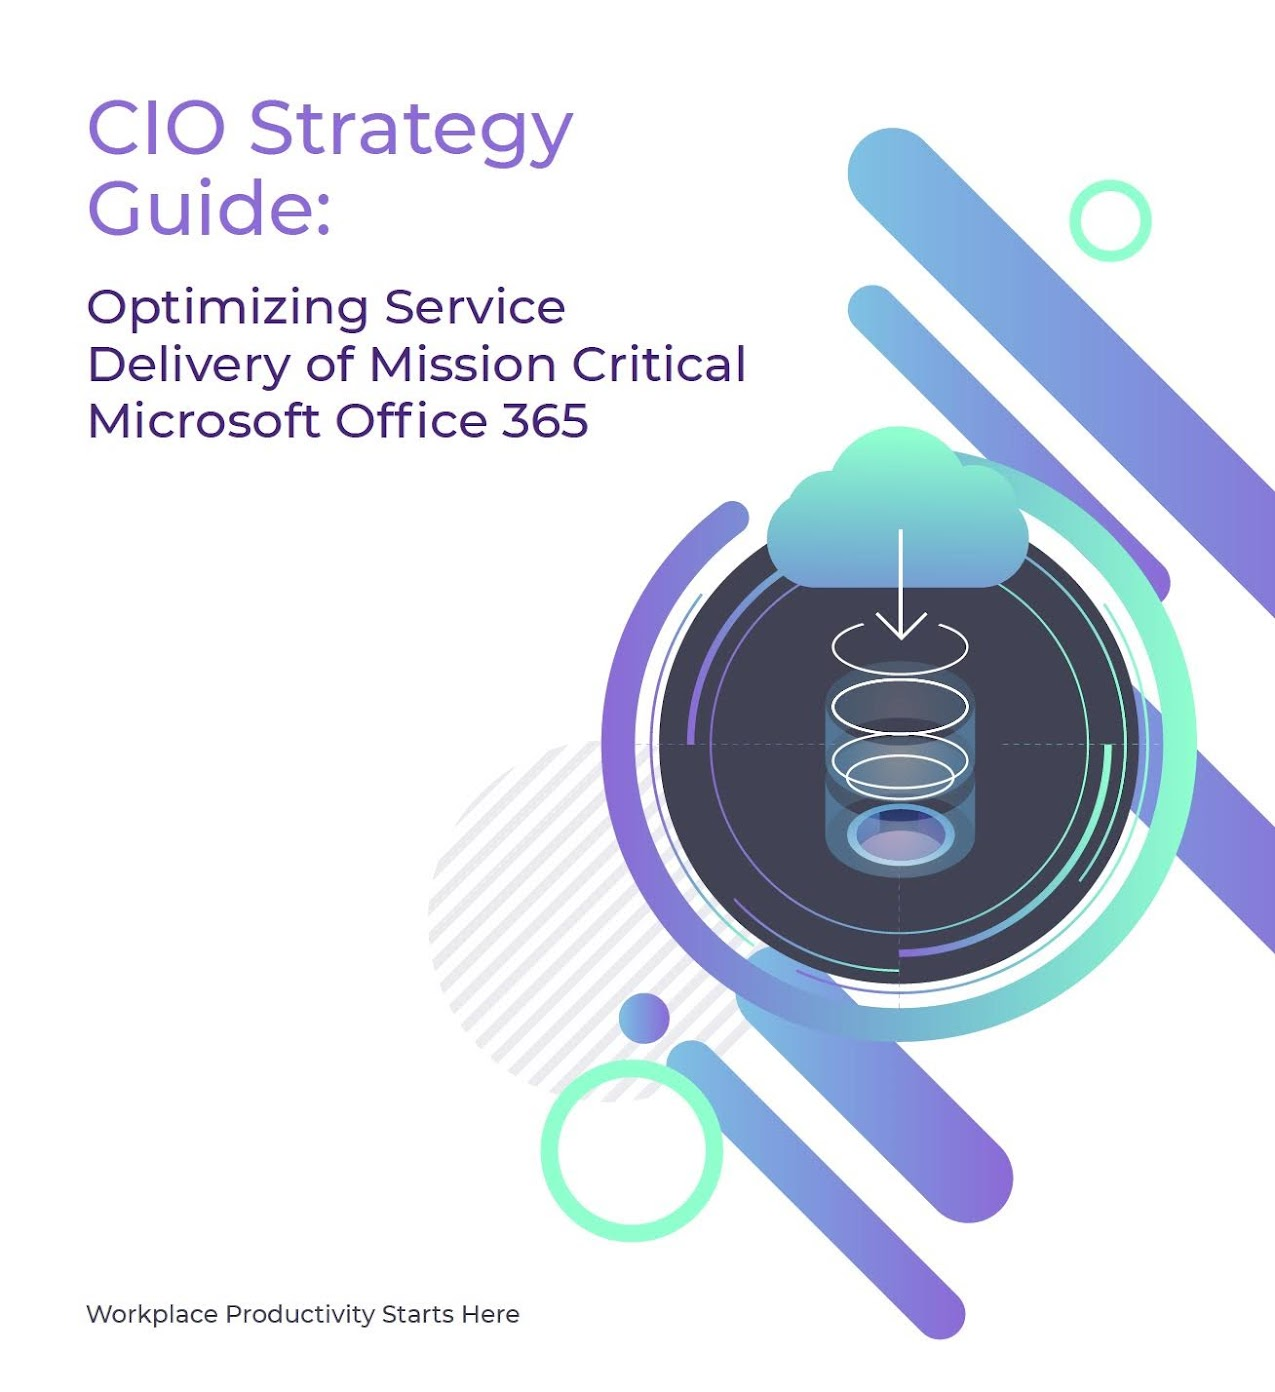 How to Optimize Service Delivery of Mission-Critical Microsoft Office 365